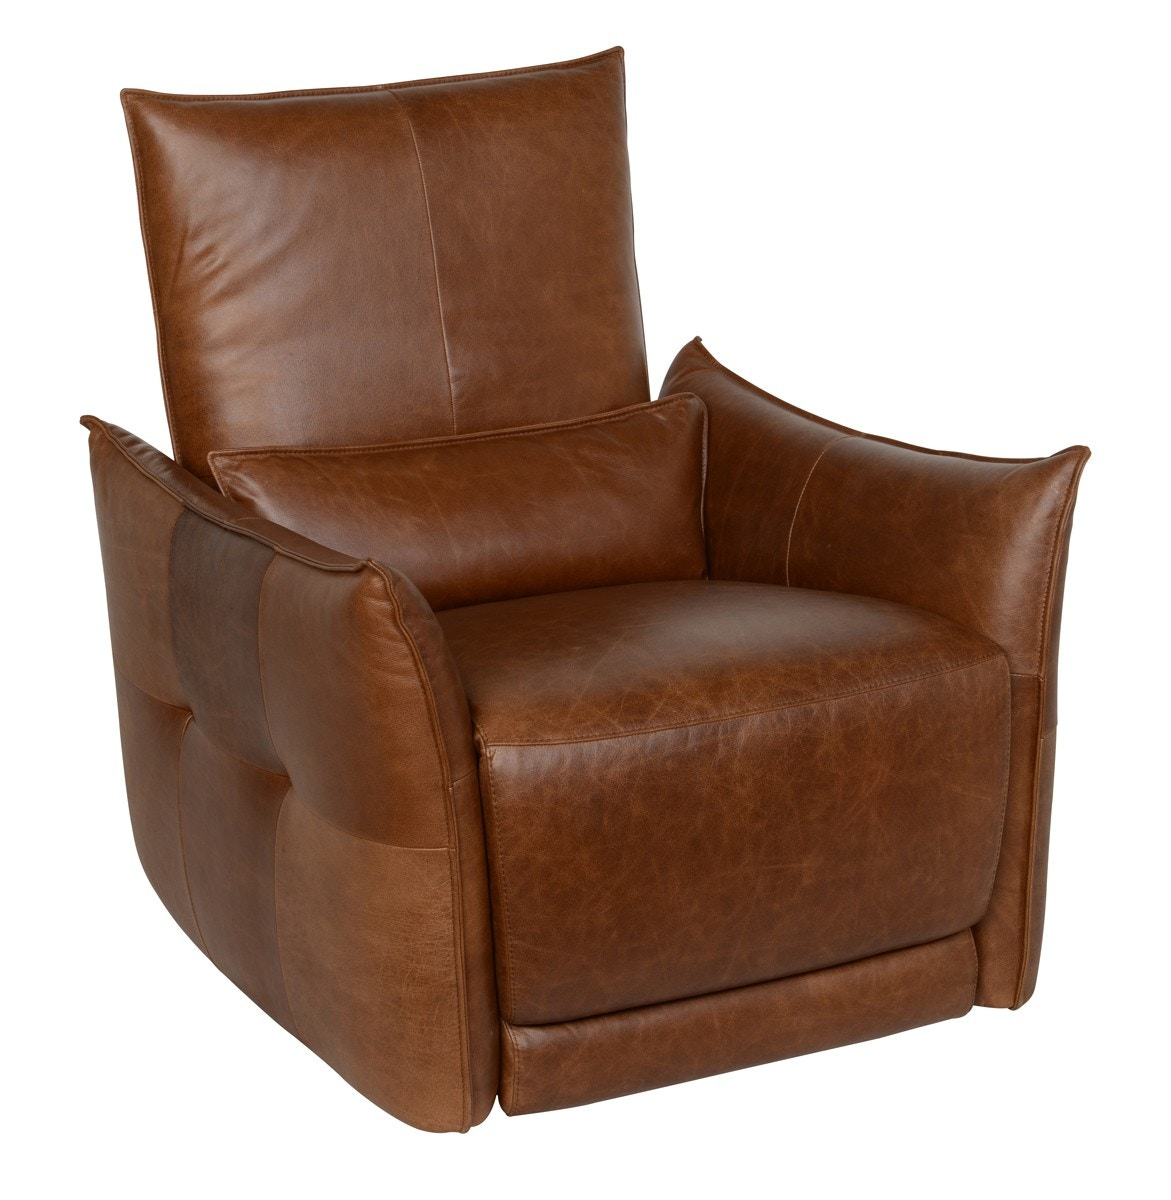 Classic Home Amsterdam Recliner Armchair 2108RE11 In Portland, Oregon